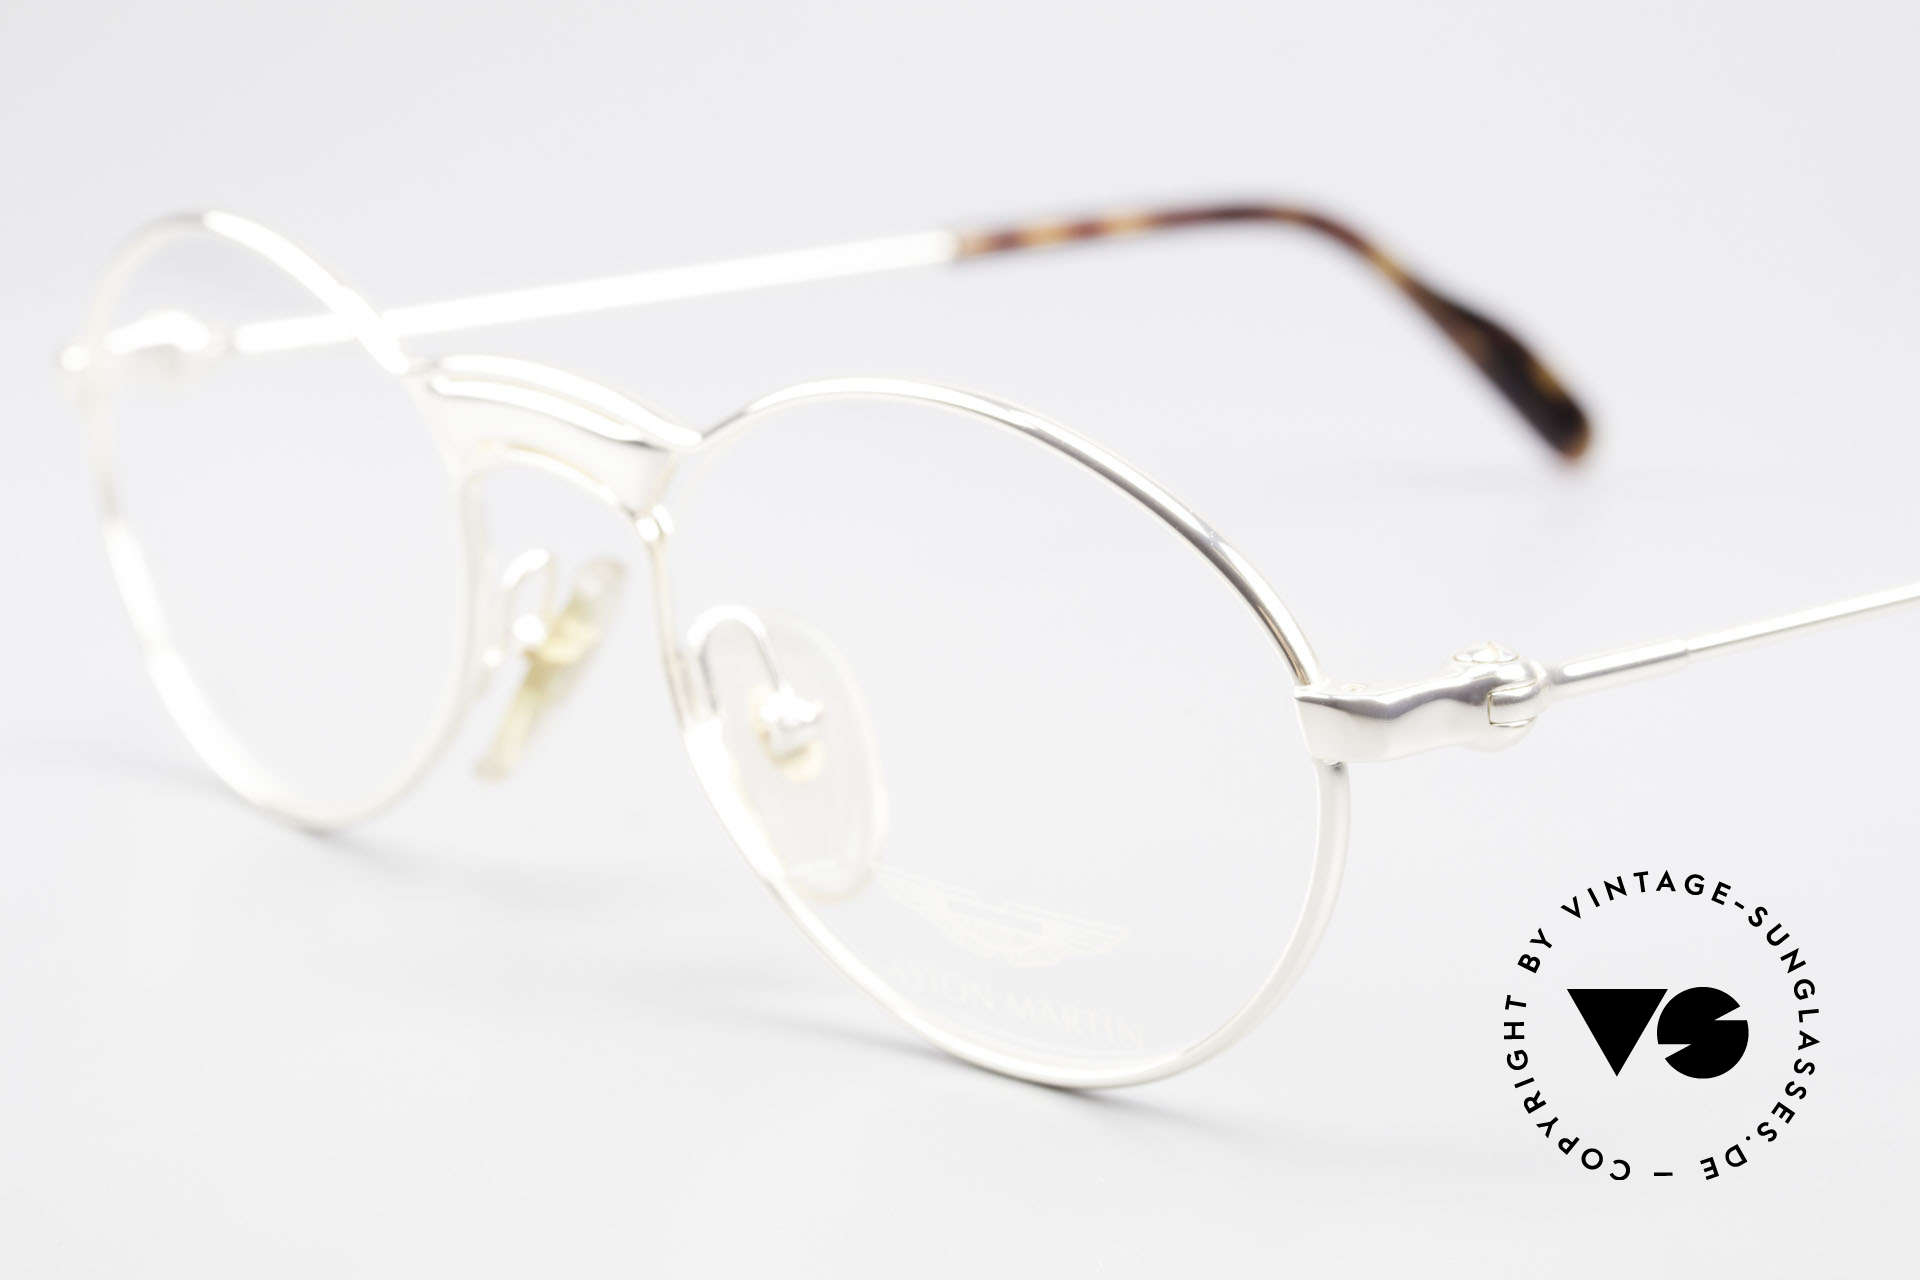 Aston Martin AM01 Oval Glasses James Bond Style, precious rarity (with serial no.) + orig. AM case and box, Made for Men